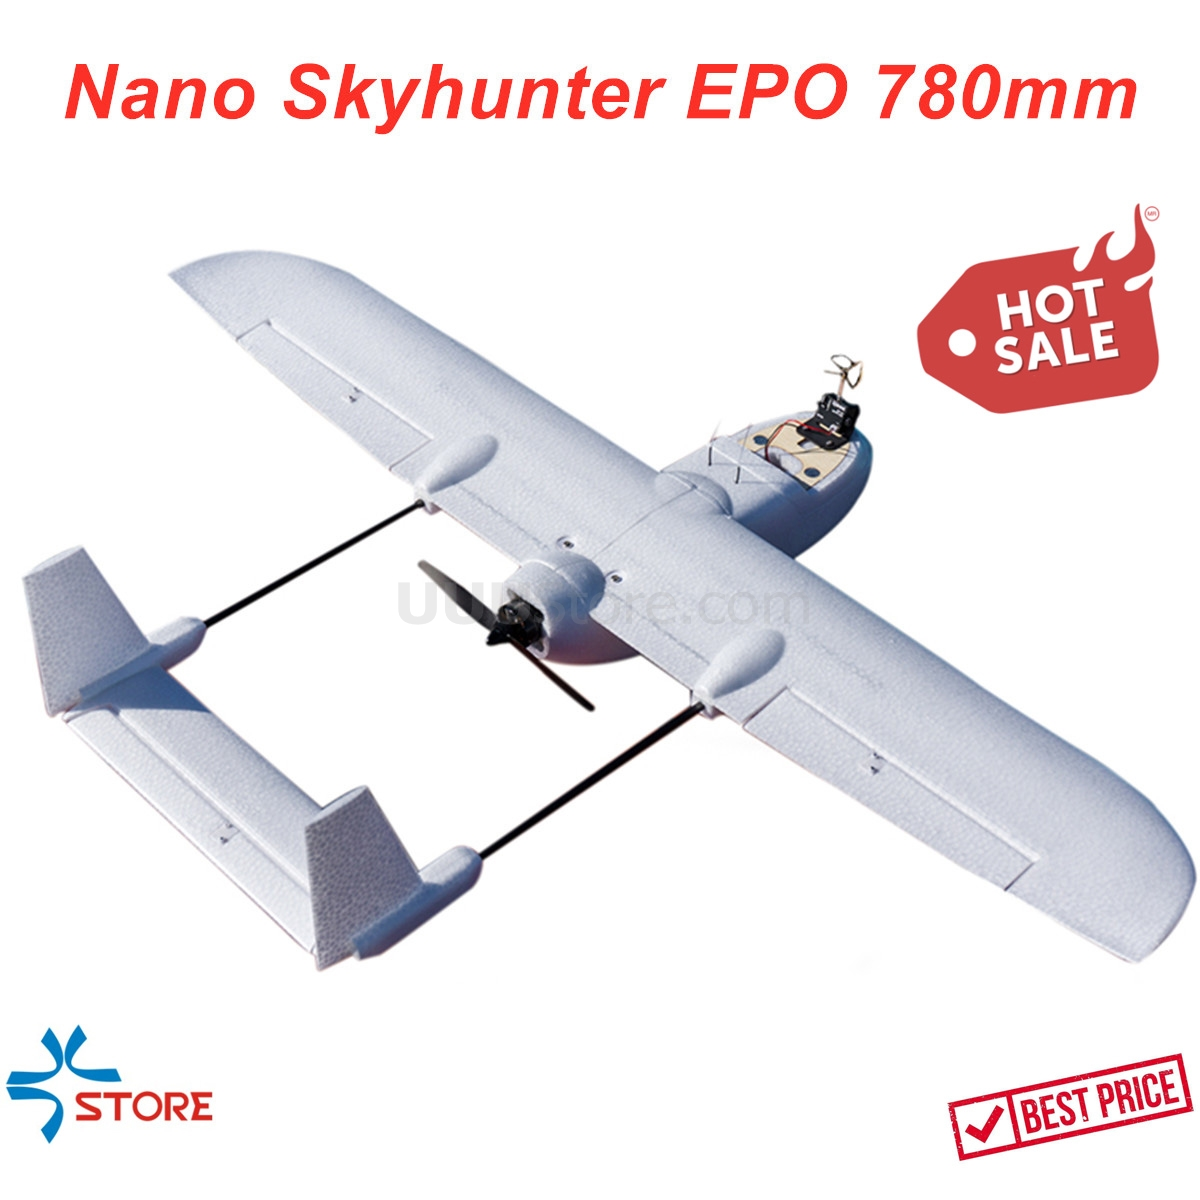 Nano Skyhunter 780mm